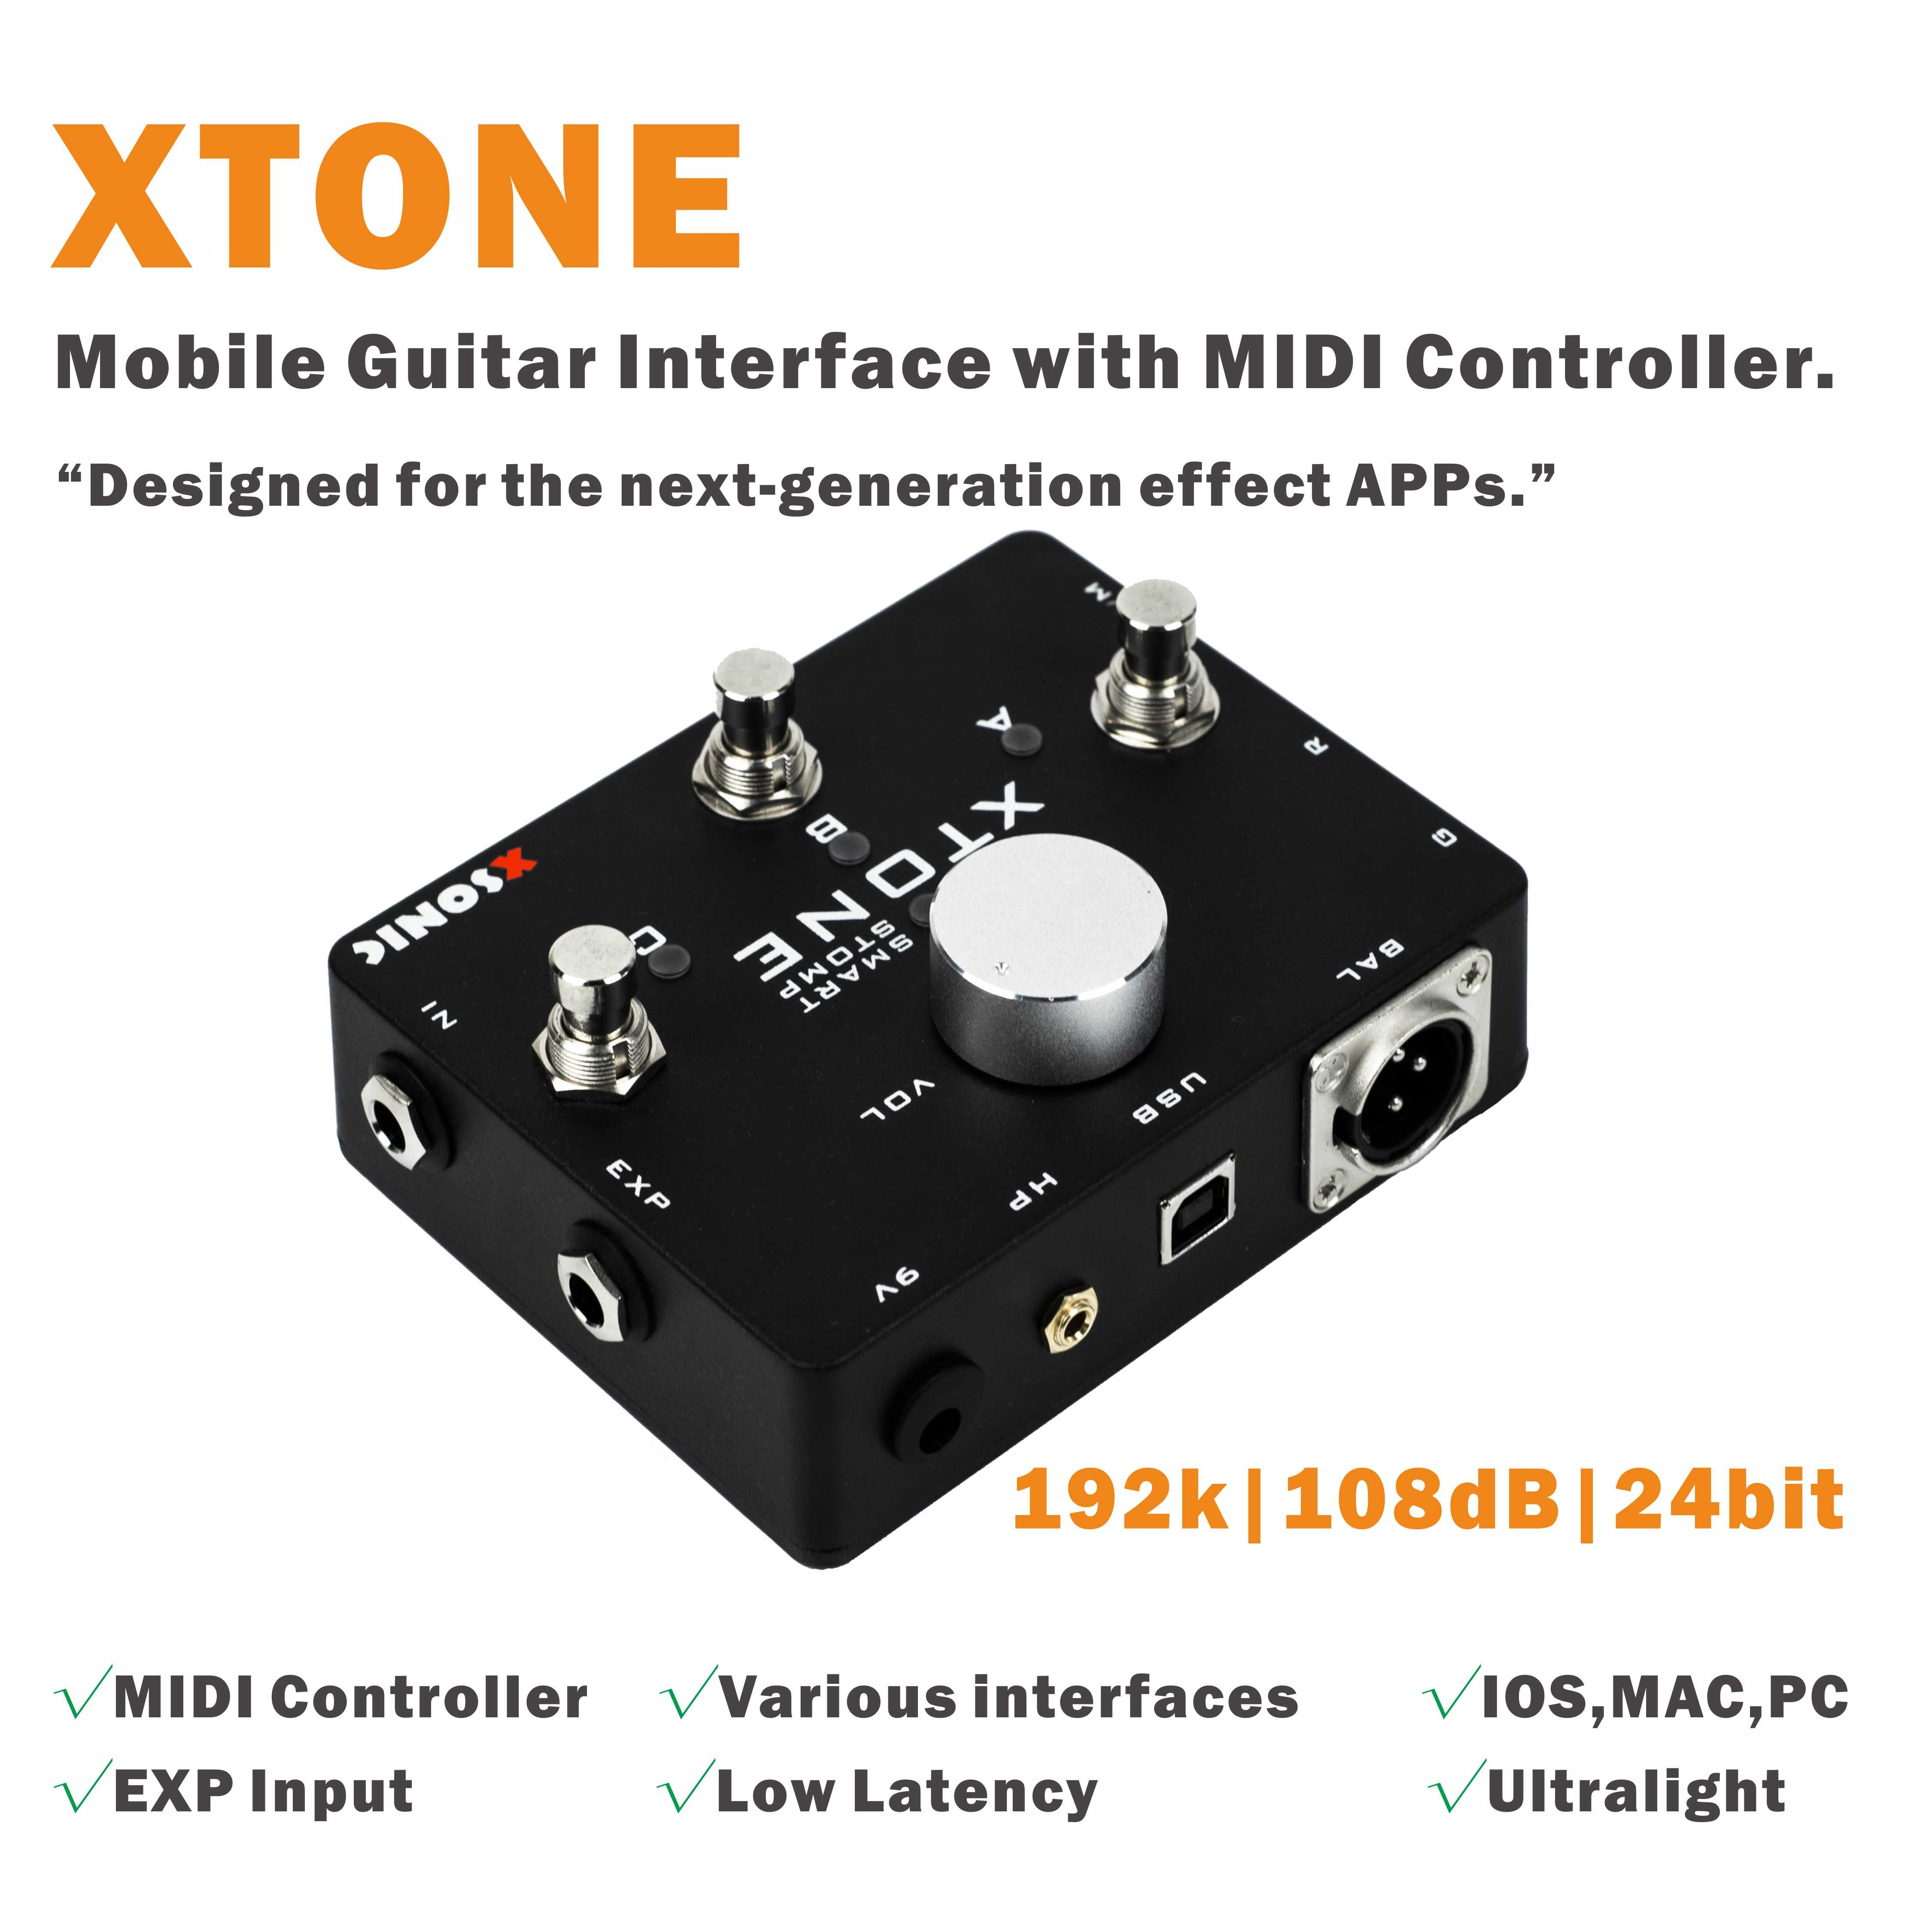 XTONE 192K Mobile Guitar Interface With MIDI Controller for iphone/ipad/PC/MAC & Ultra Low Latency enlarge